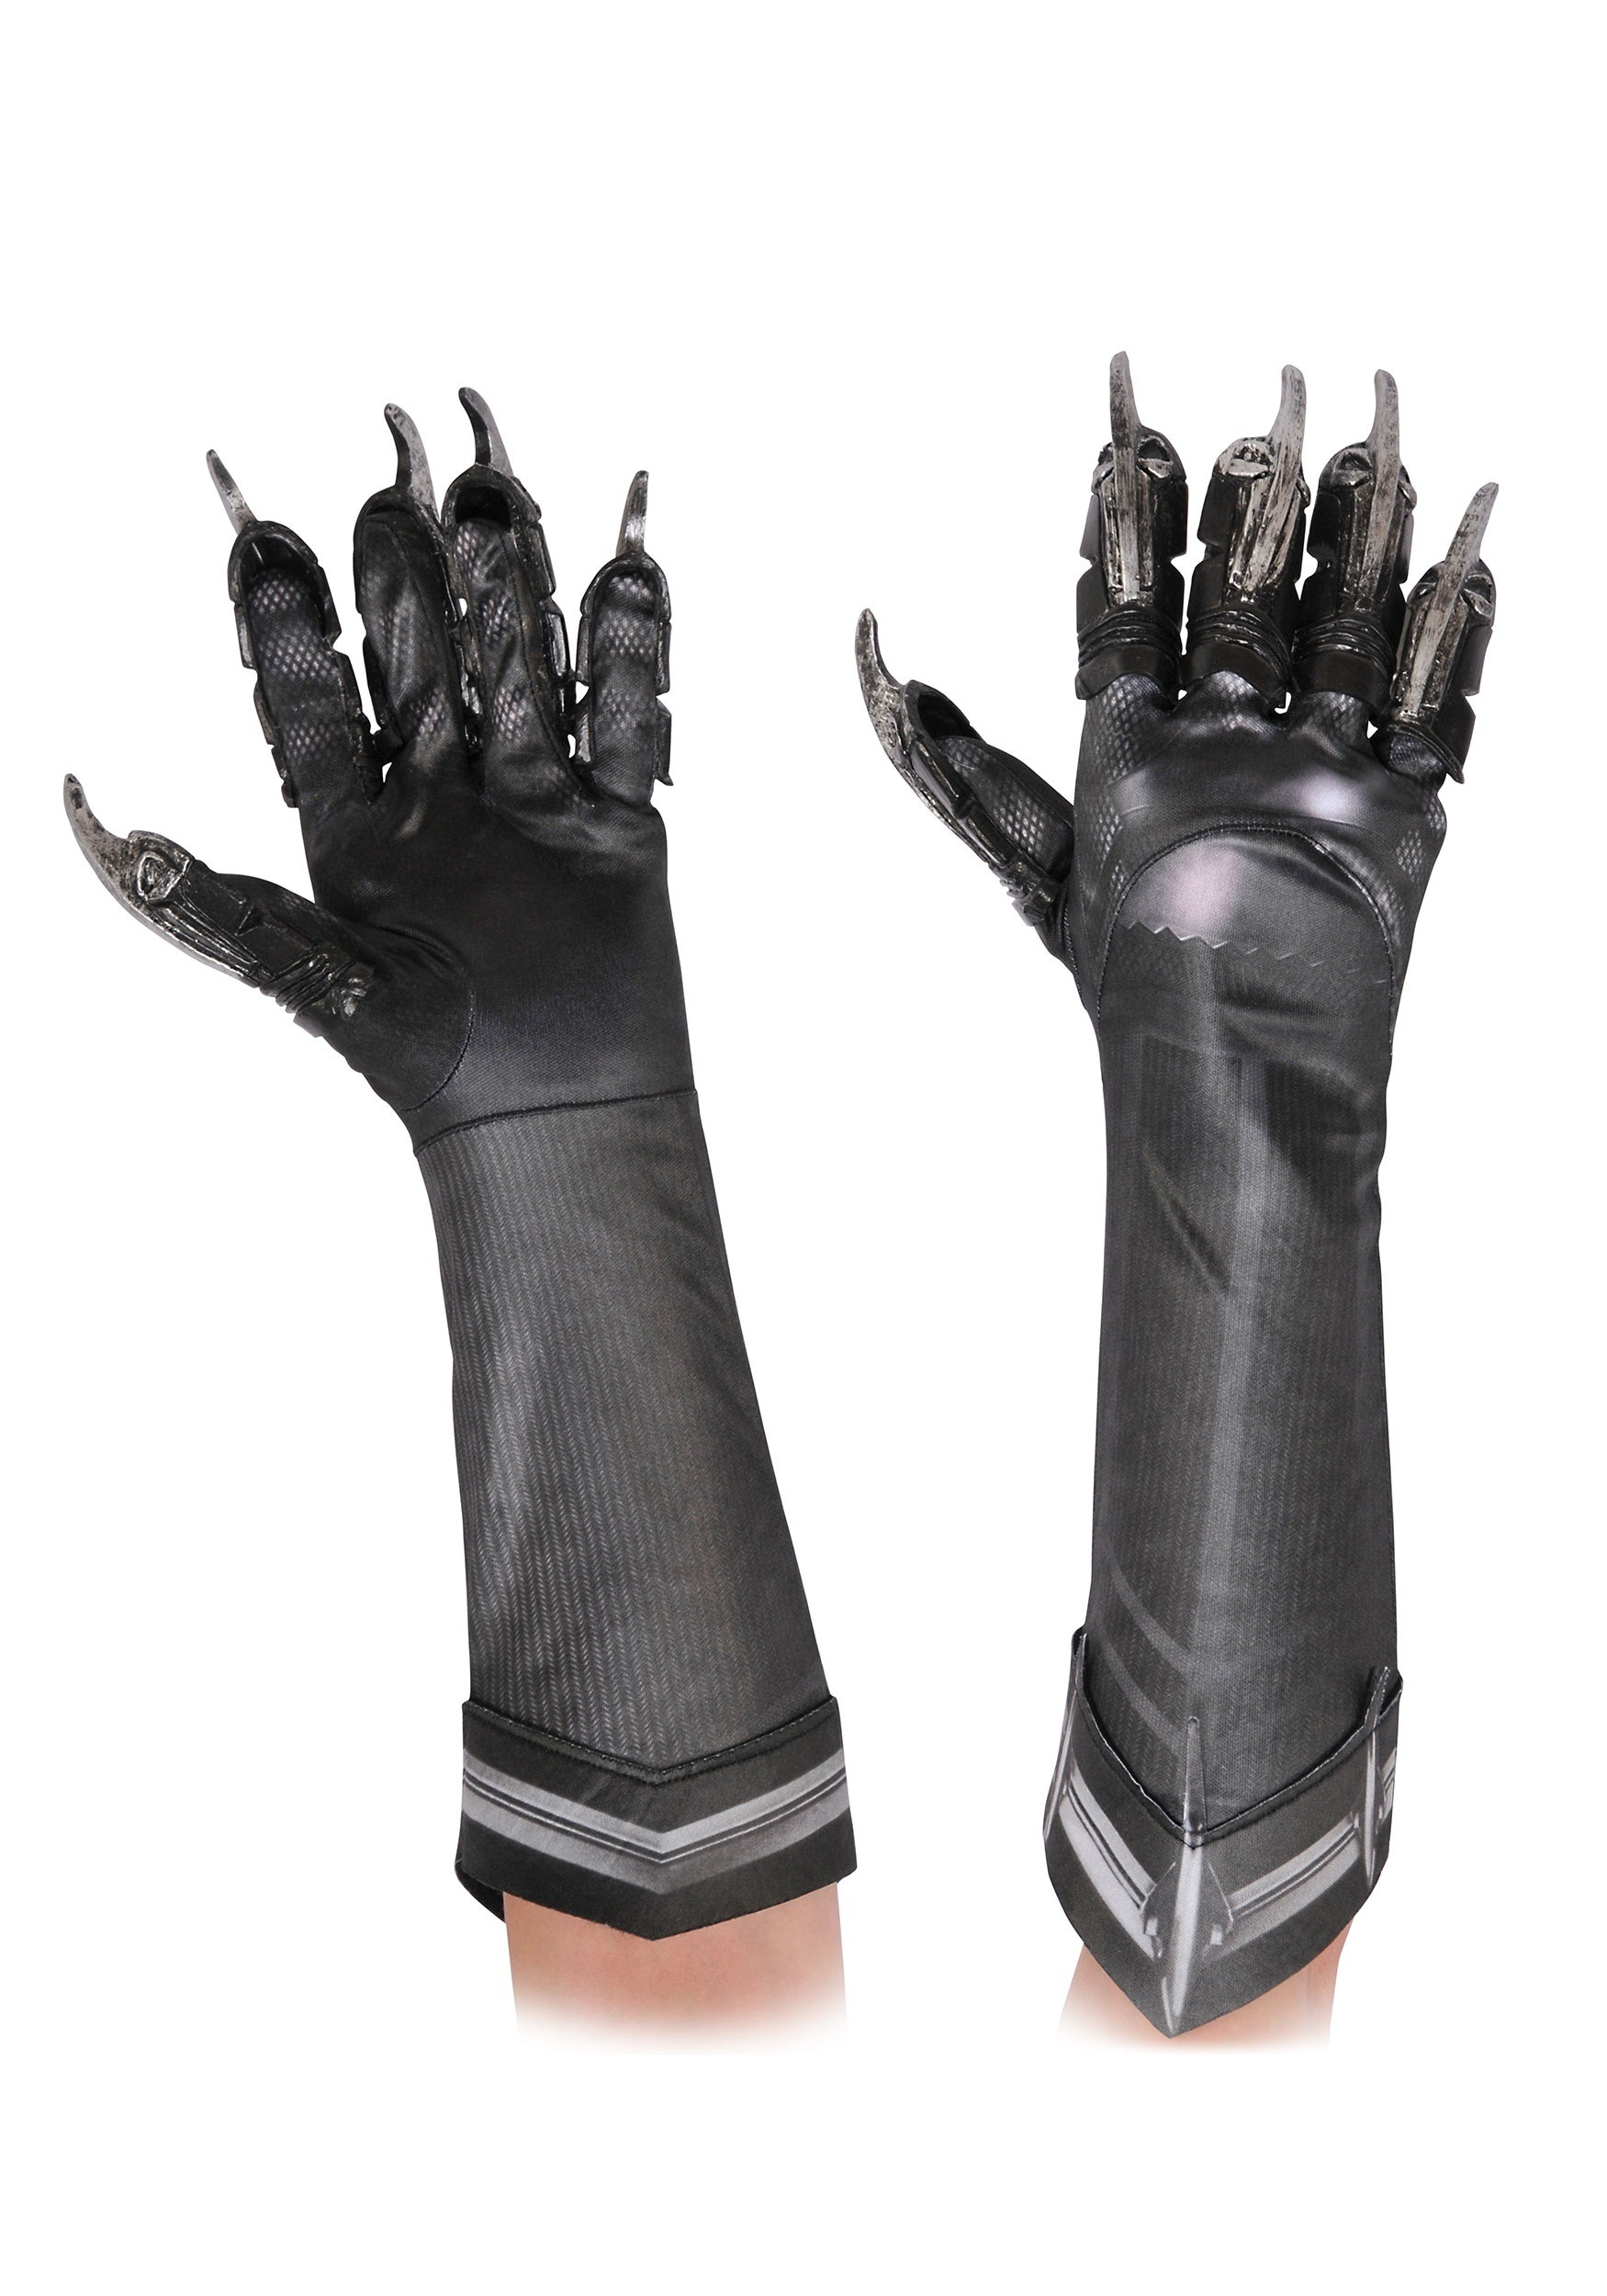 Black Panther Deluxe Child Gloves RU32628